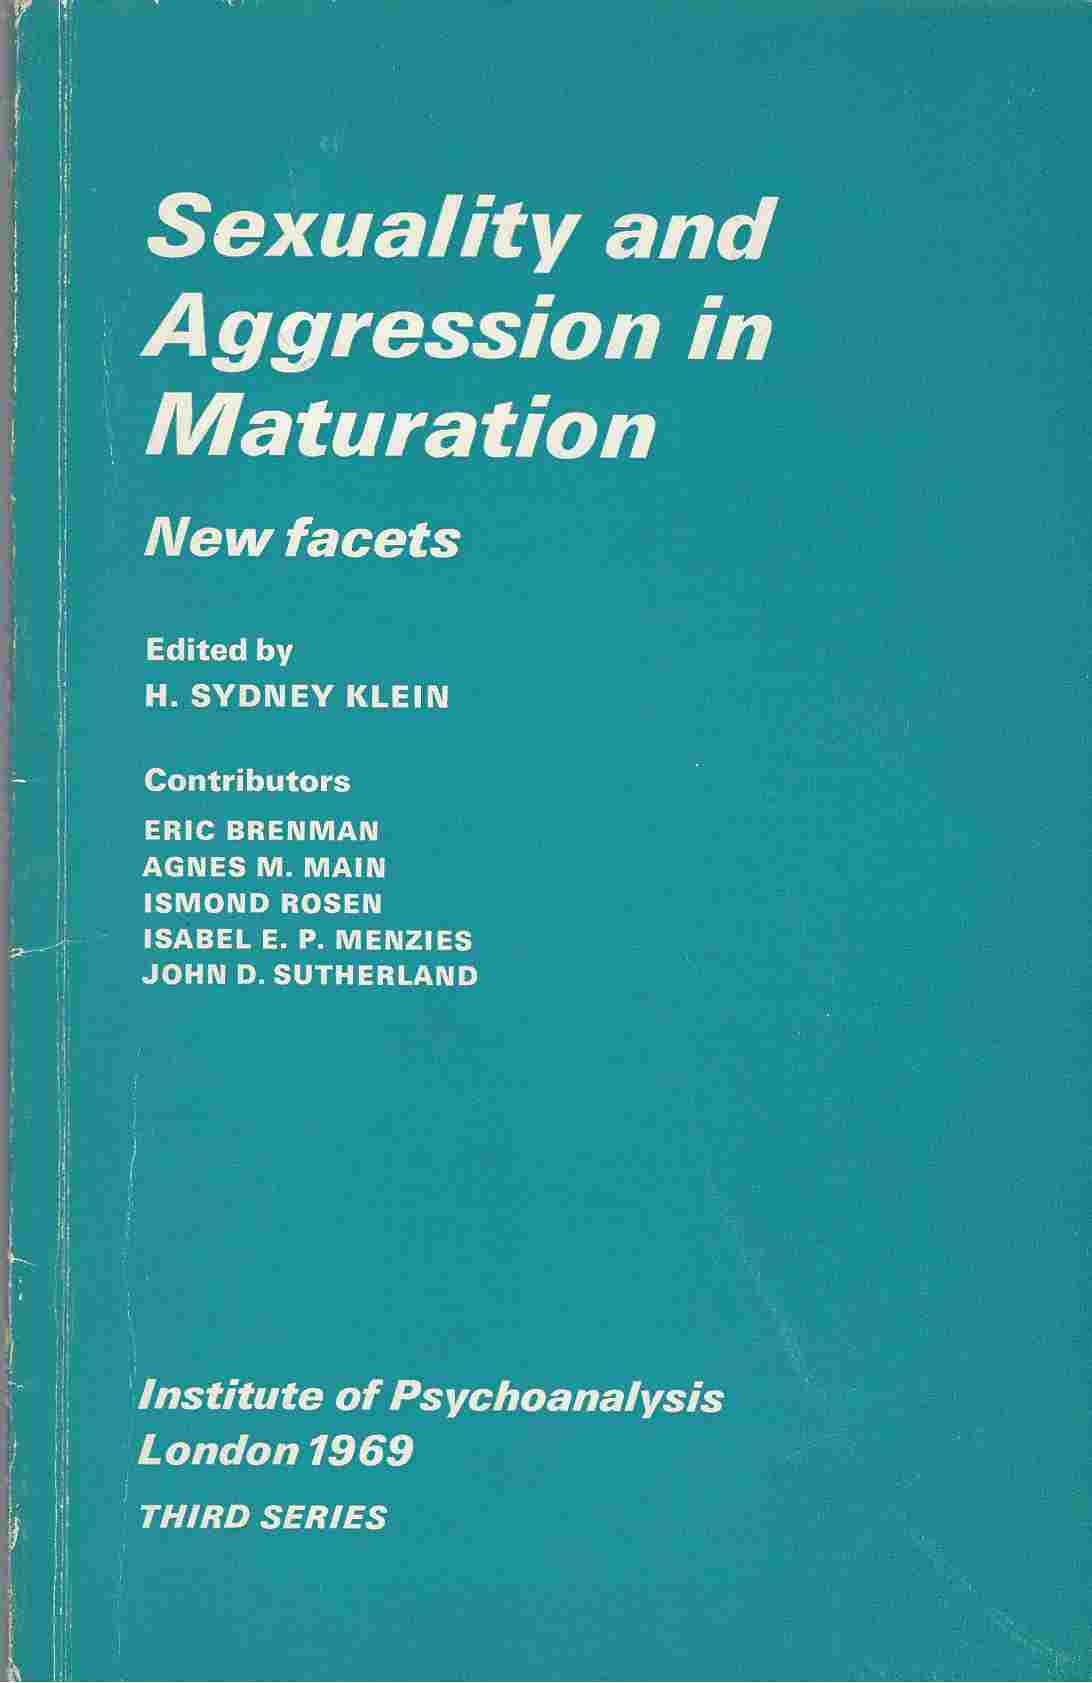 Image for Sexuality and Aggression in Maturation